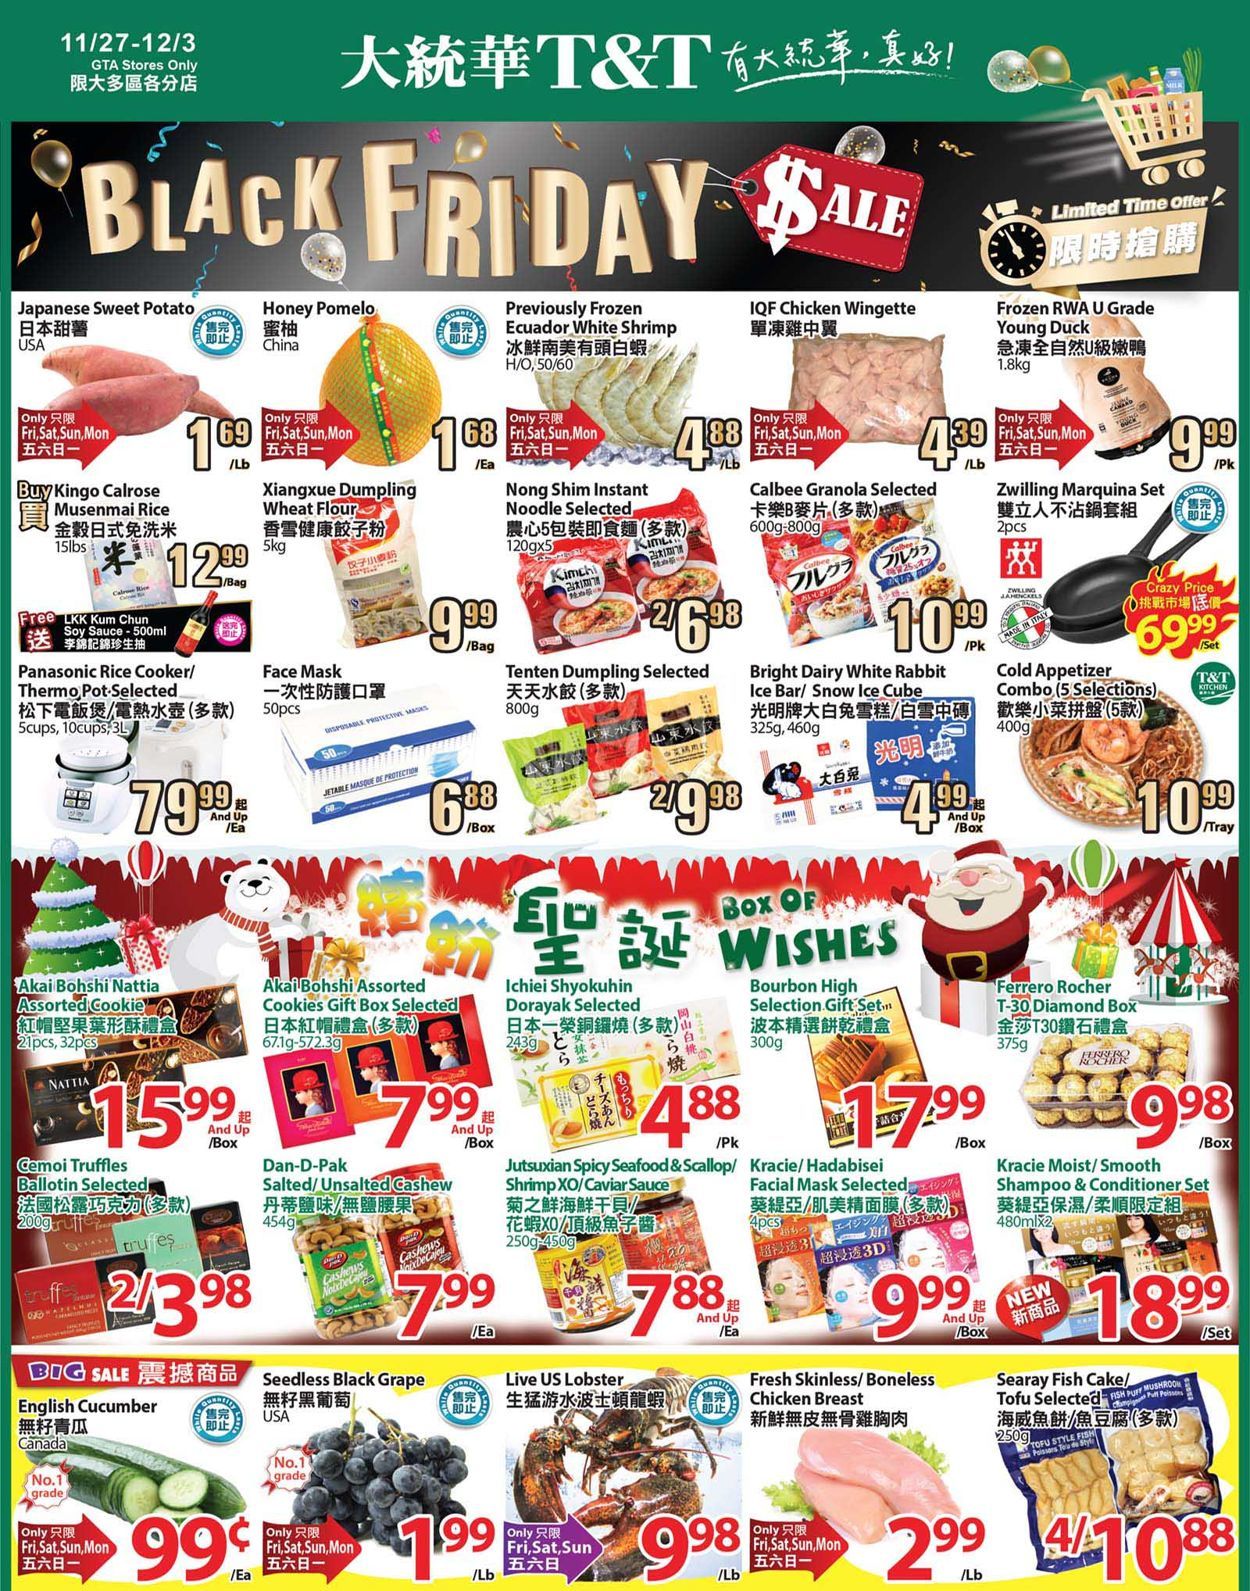 T&T Supermarket Black Friday 2020 - Greater Toronto Area Flyer - 11/27-12/03/2020